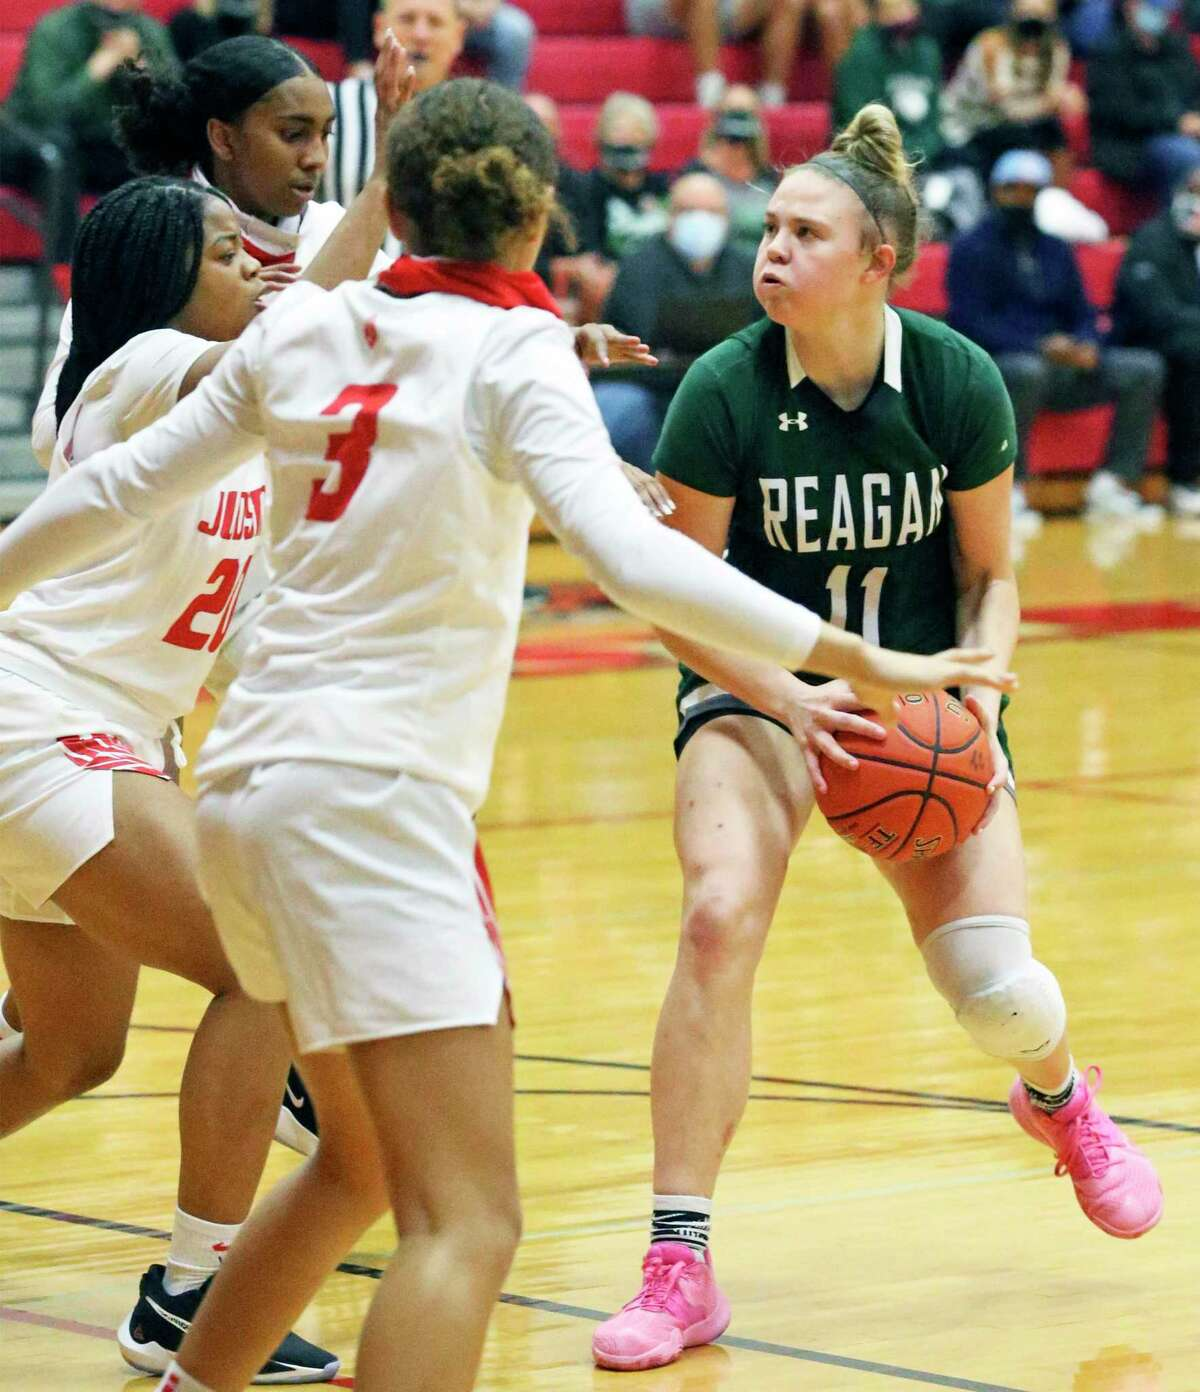 Rattler forward Samantha Wagner draws a triple team as she moves into the key for a jumper as Judson hosts Reagan in girls basketball at Judson gym Dec. 1, 2020.